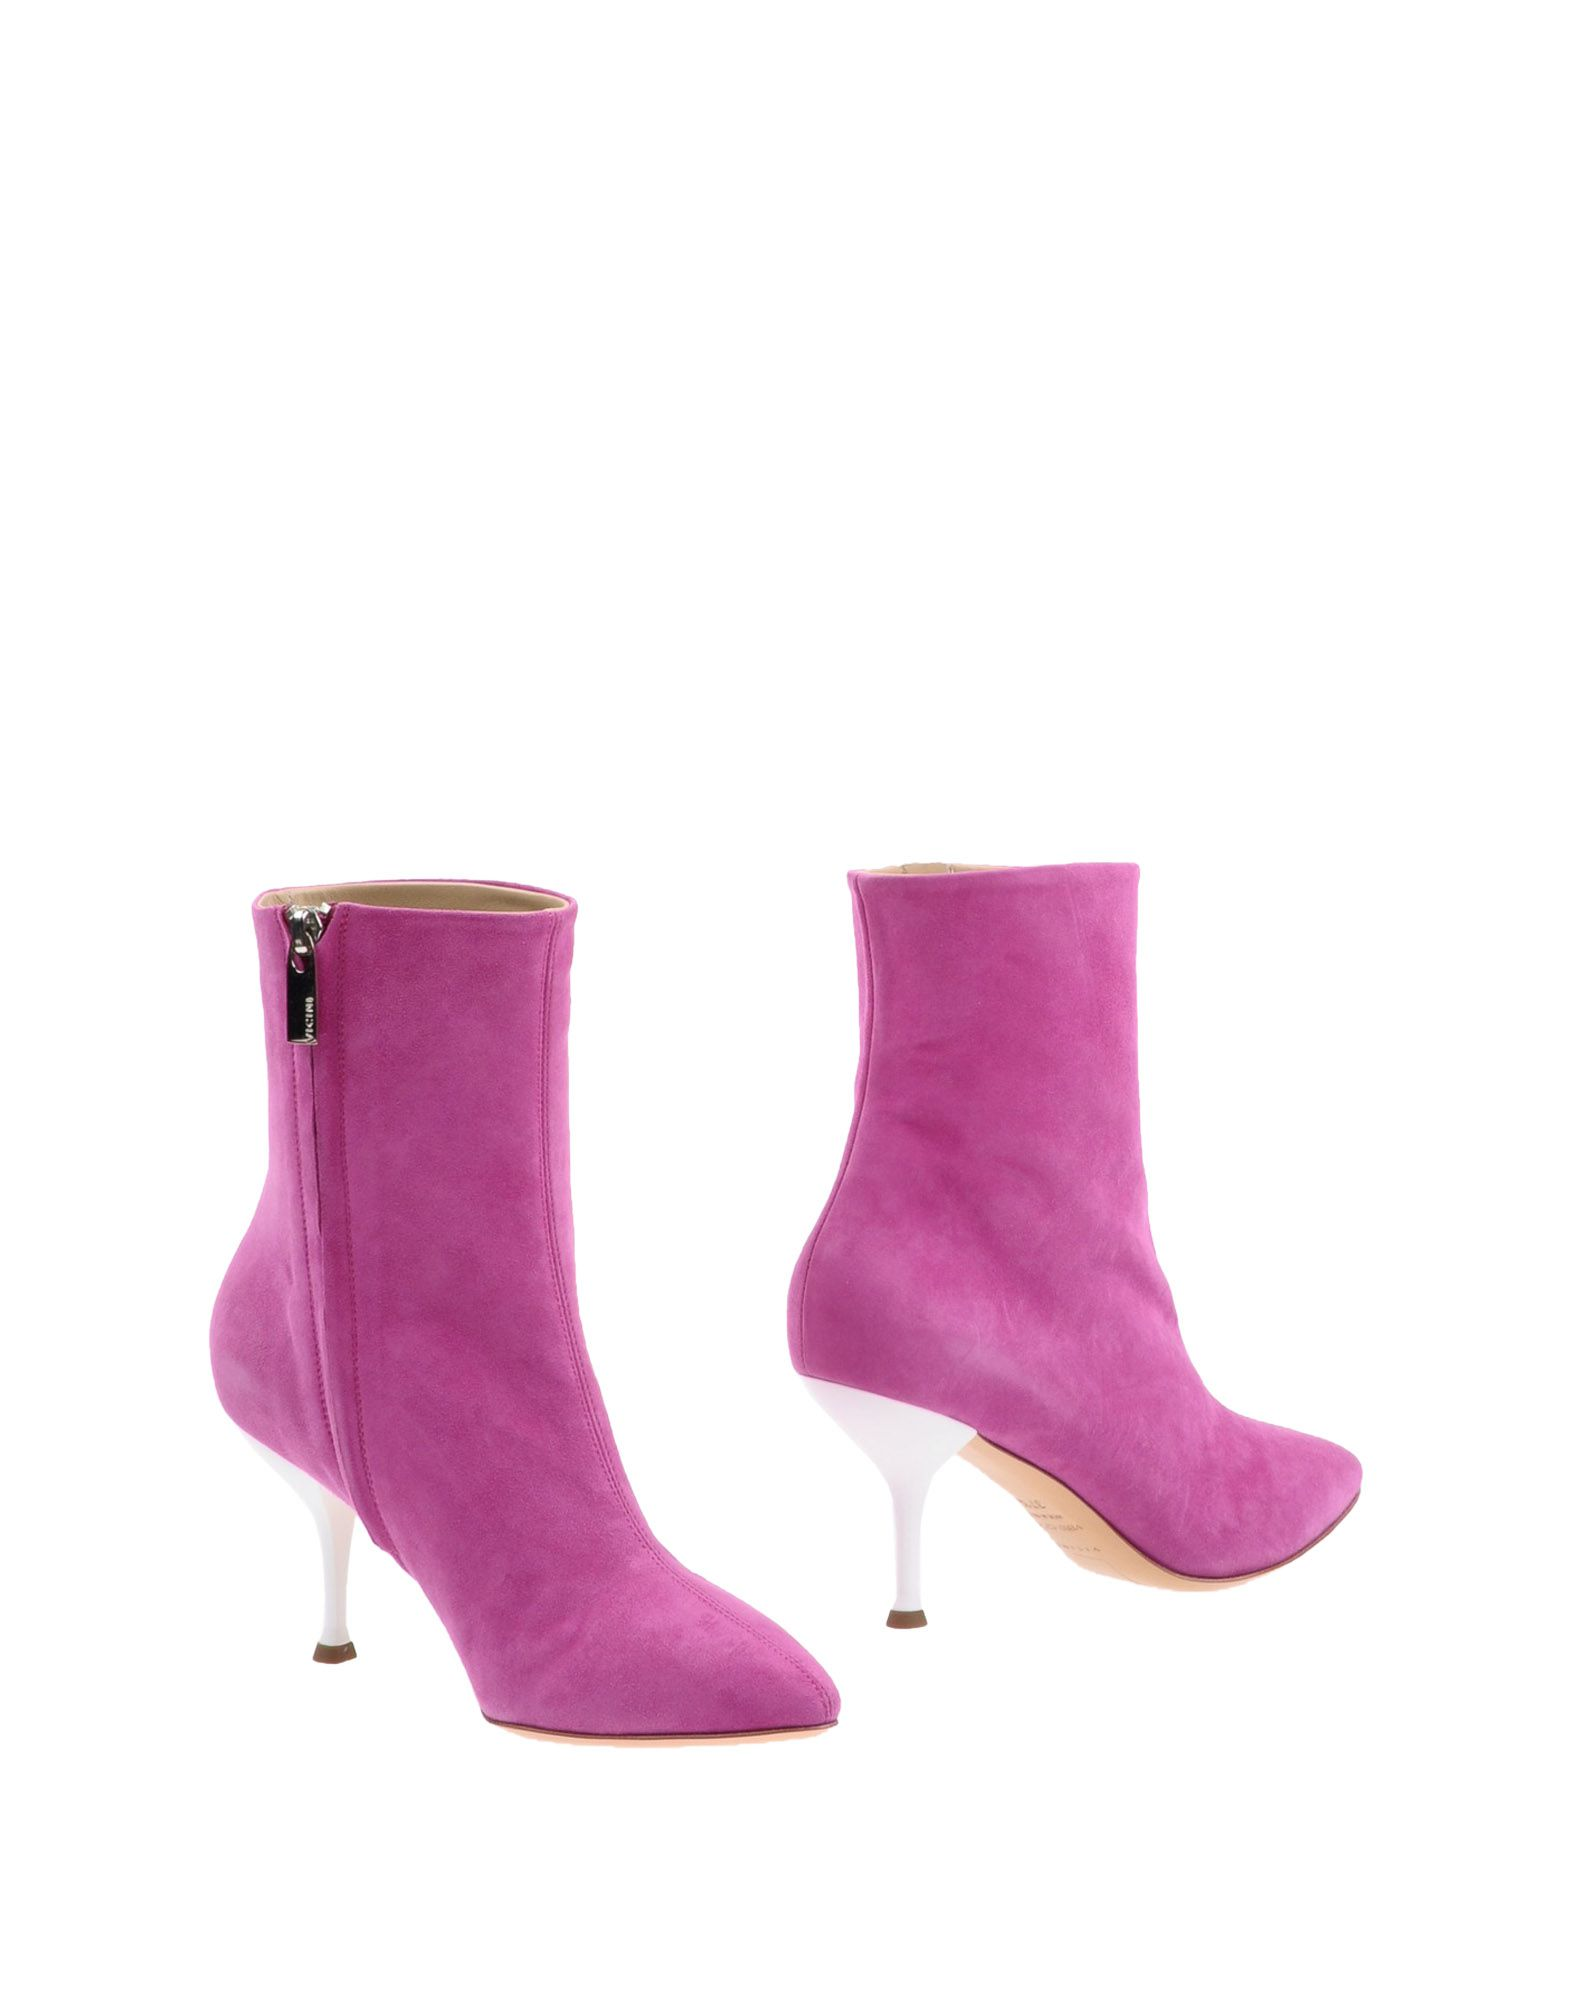 Bottine Vicini Femme - Bottines Vicini Fuchsia Mode pas cher et belle